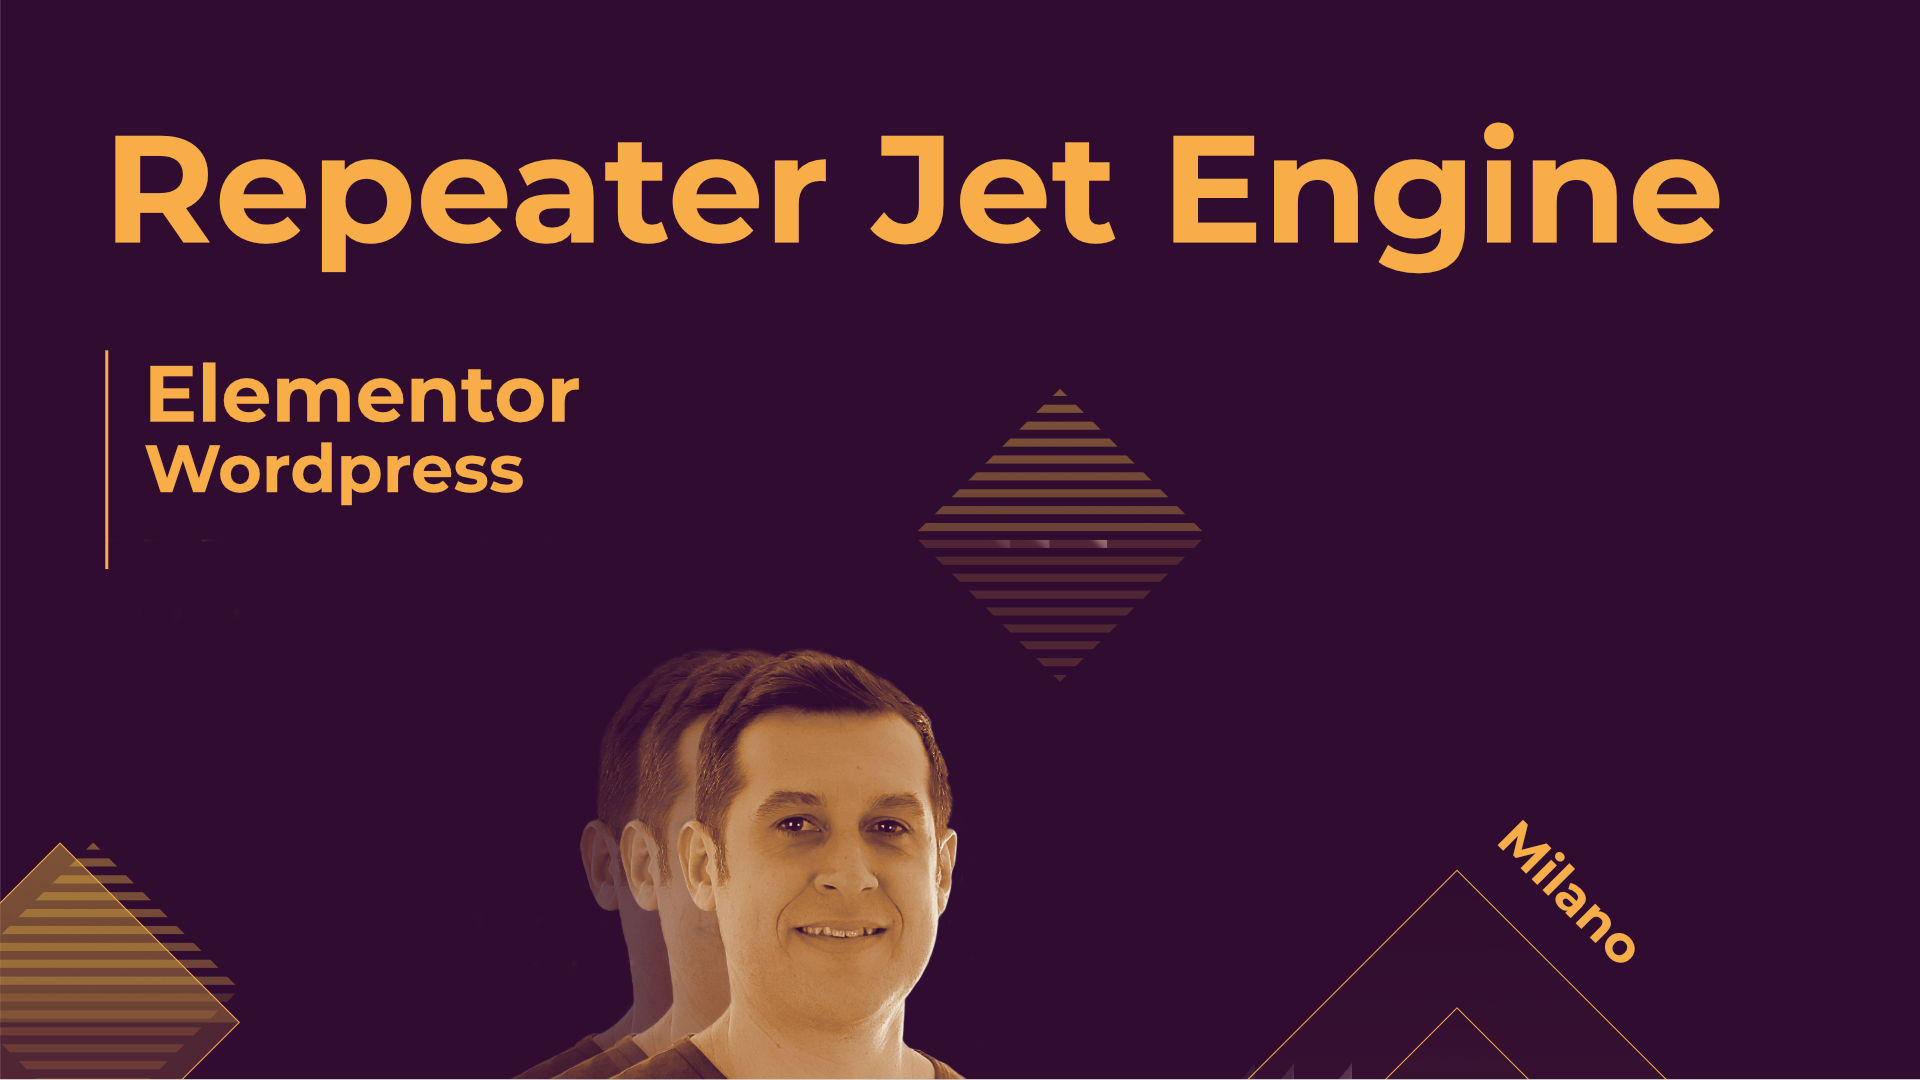 Tutorial-Repeater-Jet-Engine-Elementor-Wordpress-Milano